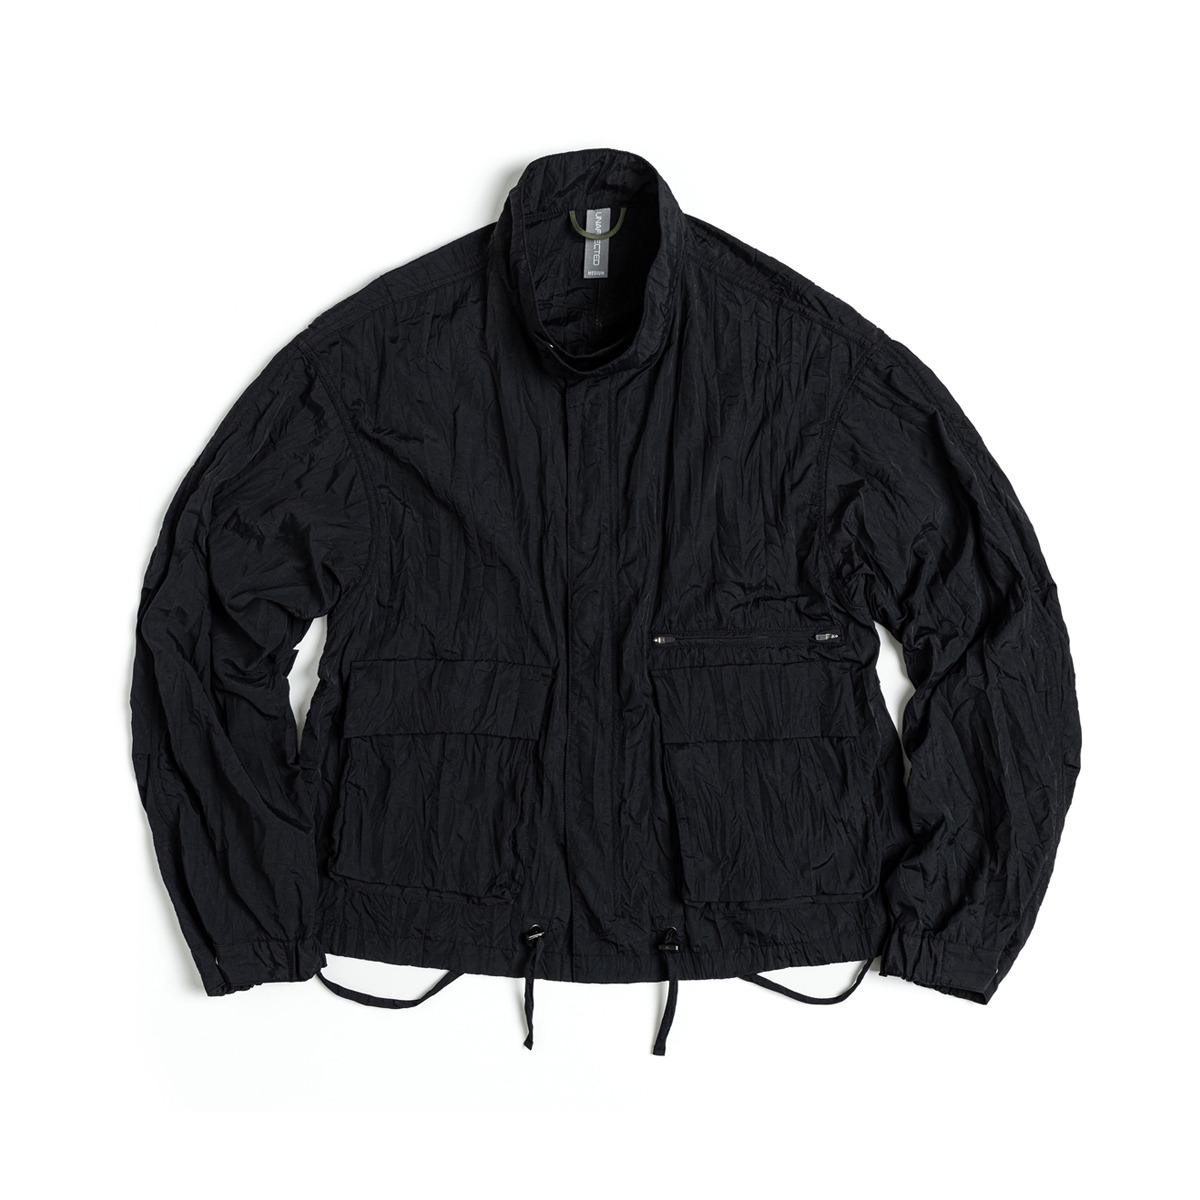 [UNAFFECTED] AG OVERSIZED BLOUSON 'BLACK'